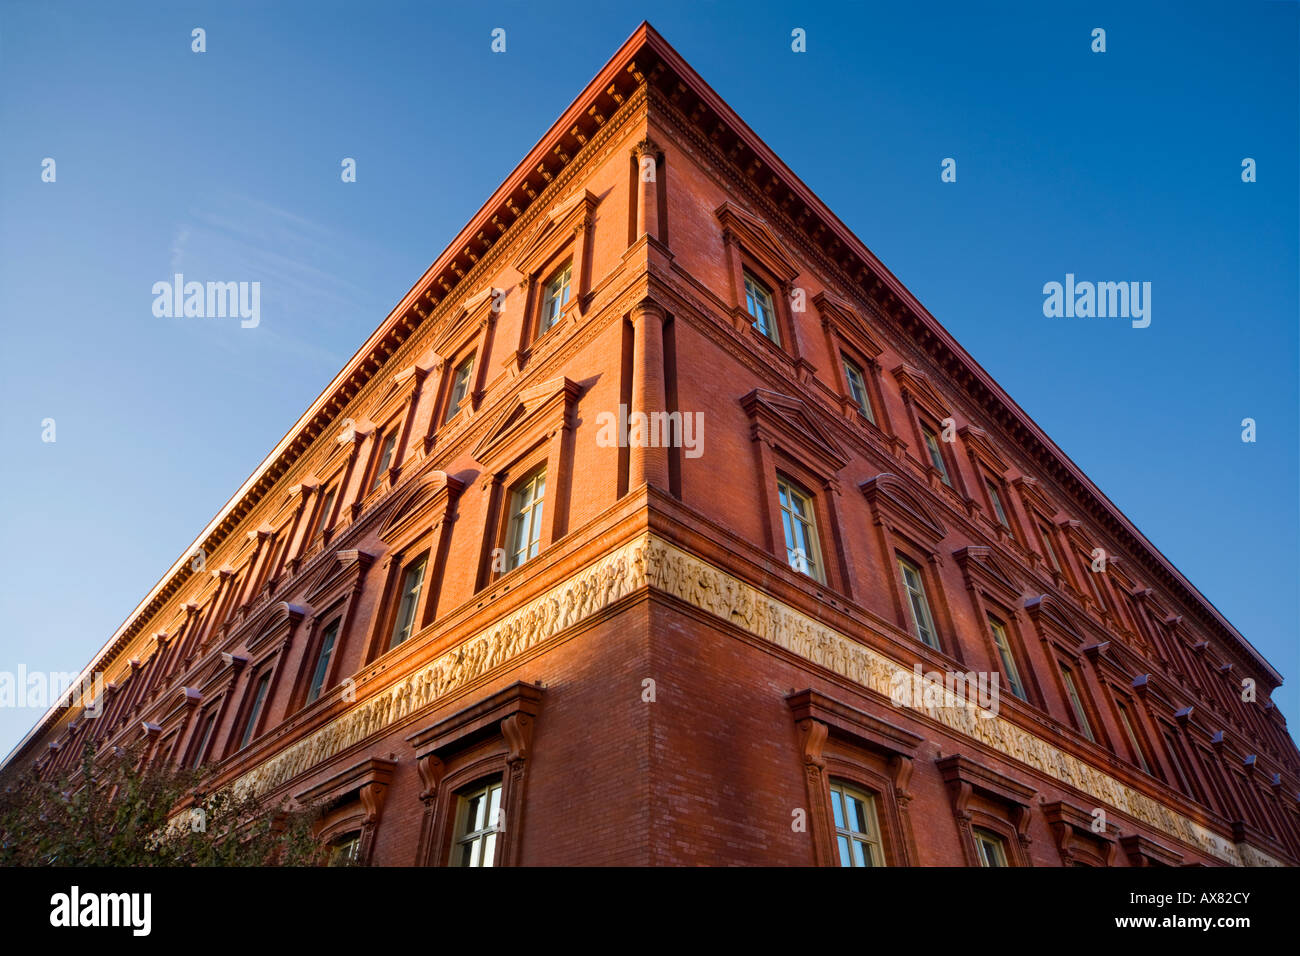 Corner of The National Building Museum Washington, D.C. US USA - Stock Image